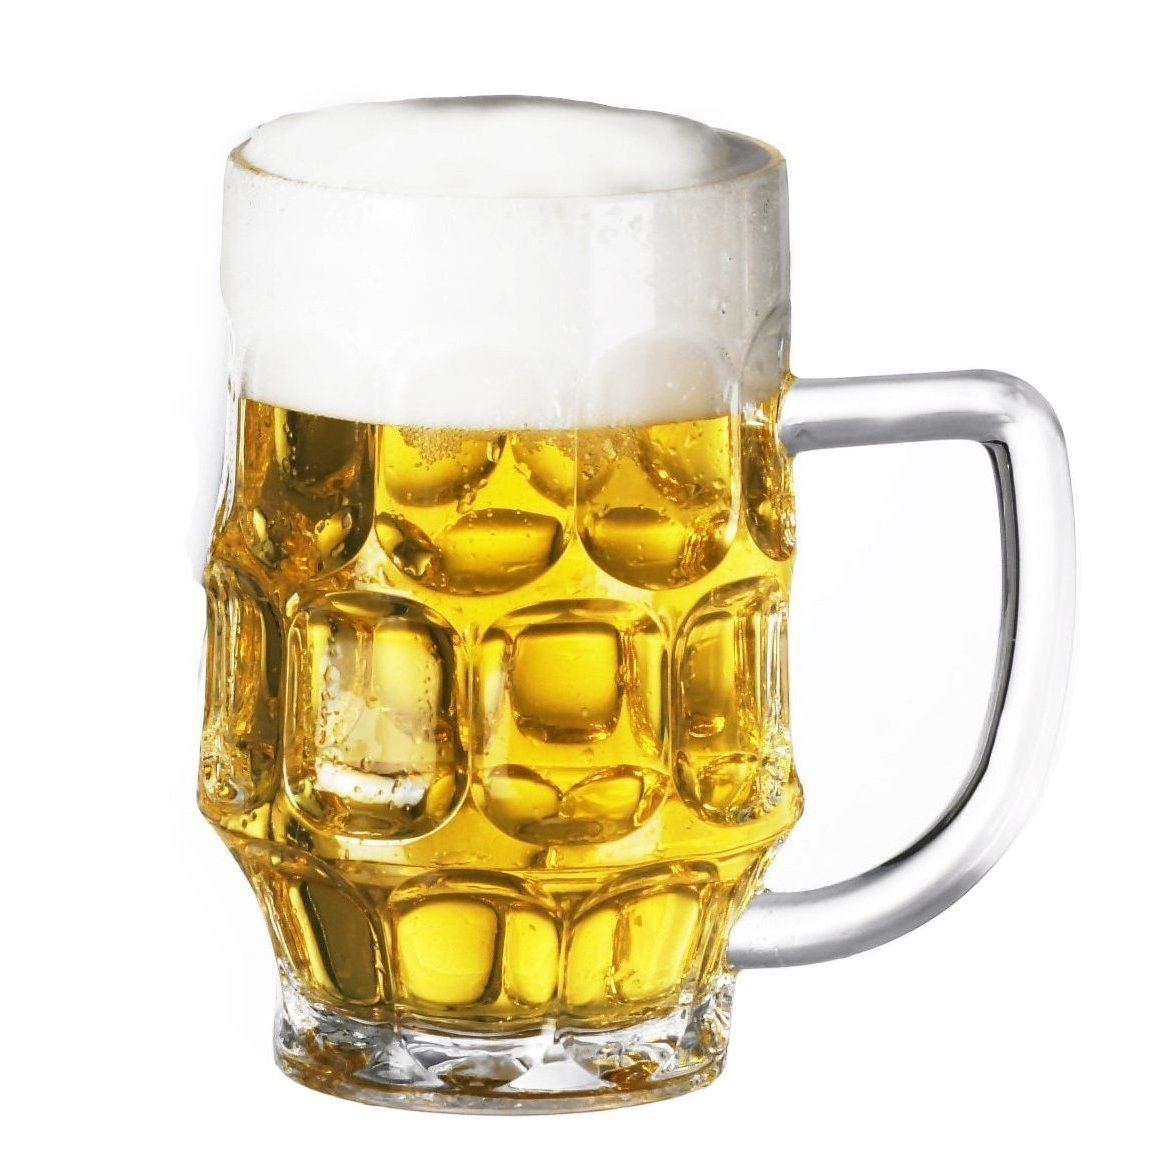 Plastic Beer Mugs, set of 1 Giant 26oz. Great for Daily Use & Oktoberfest. Weighs MERELY 5oz.-EASY to Hold & Handle, STRESSFREE On Your Arm & Fingers!! Dimple Stein & Rugged Acrylic, Shatter Proof USA_Glassware_Mugs